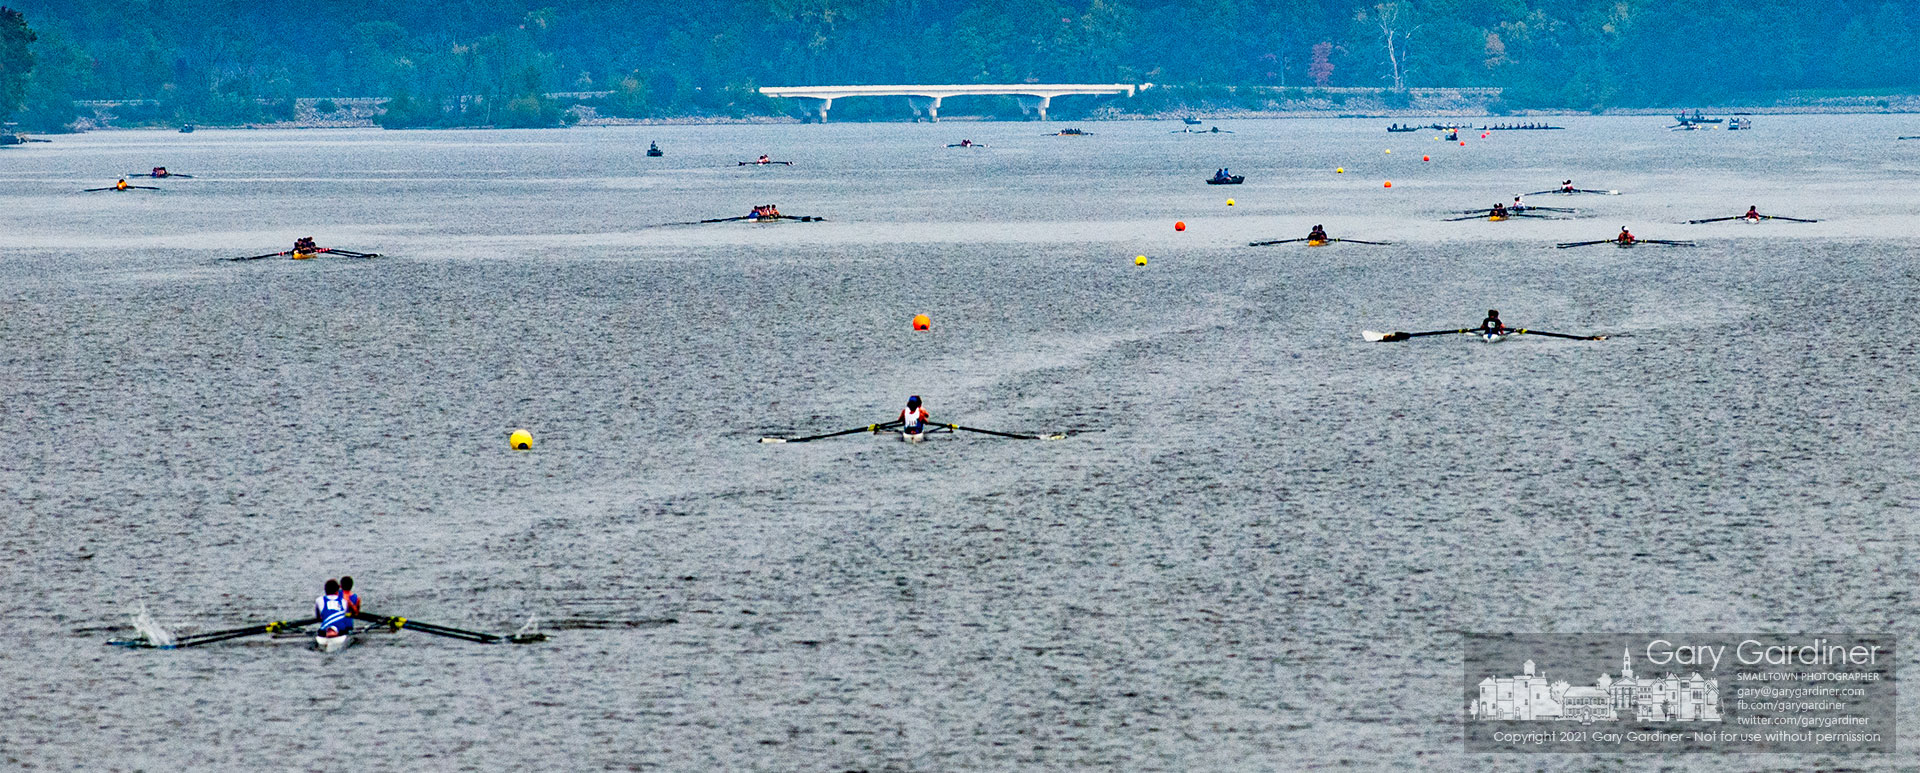 A flotilla of boats race in the Columbus Fall Classic competition Saturday at Hoover Reservoir after having canceled last year's event because of the pandemic. My Final Photo for Oct. 9, 2021.